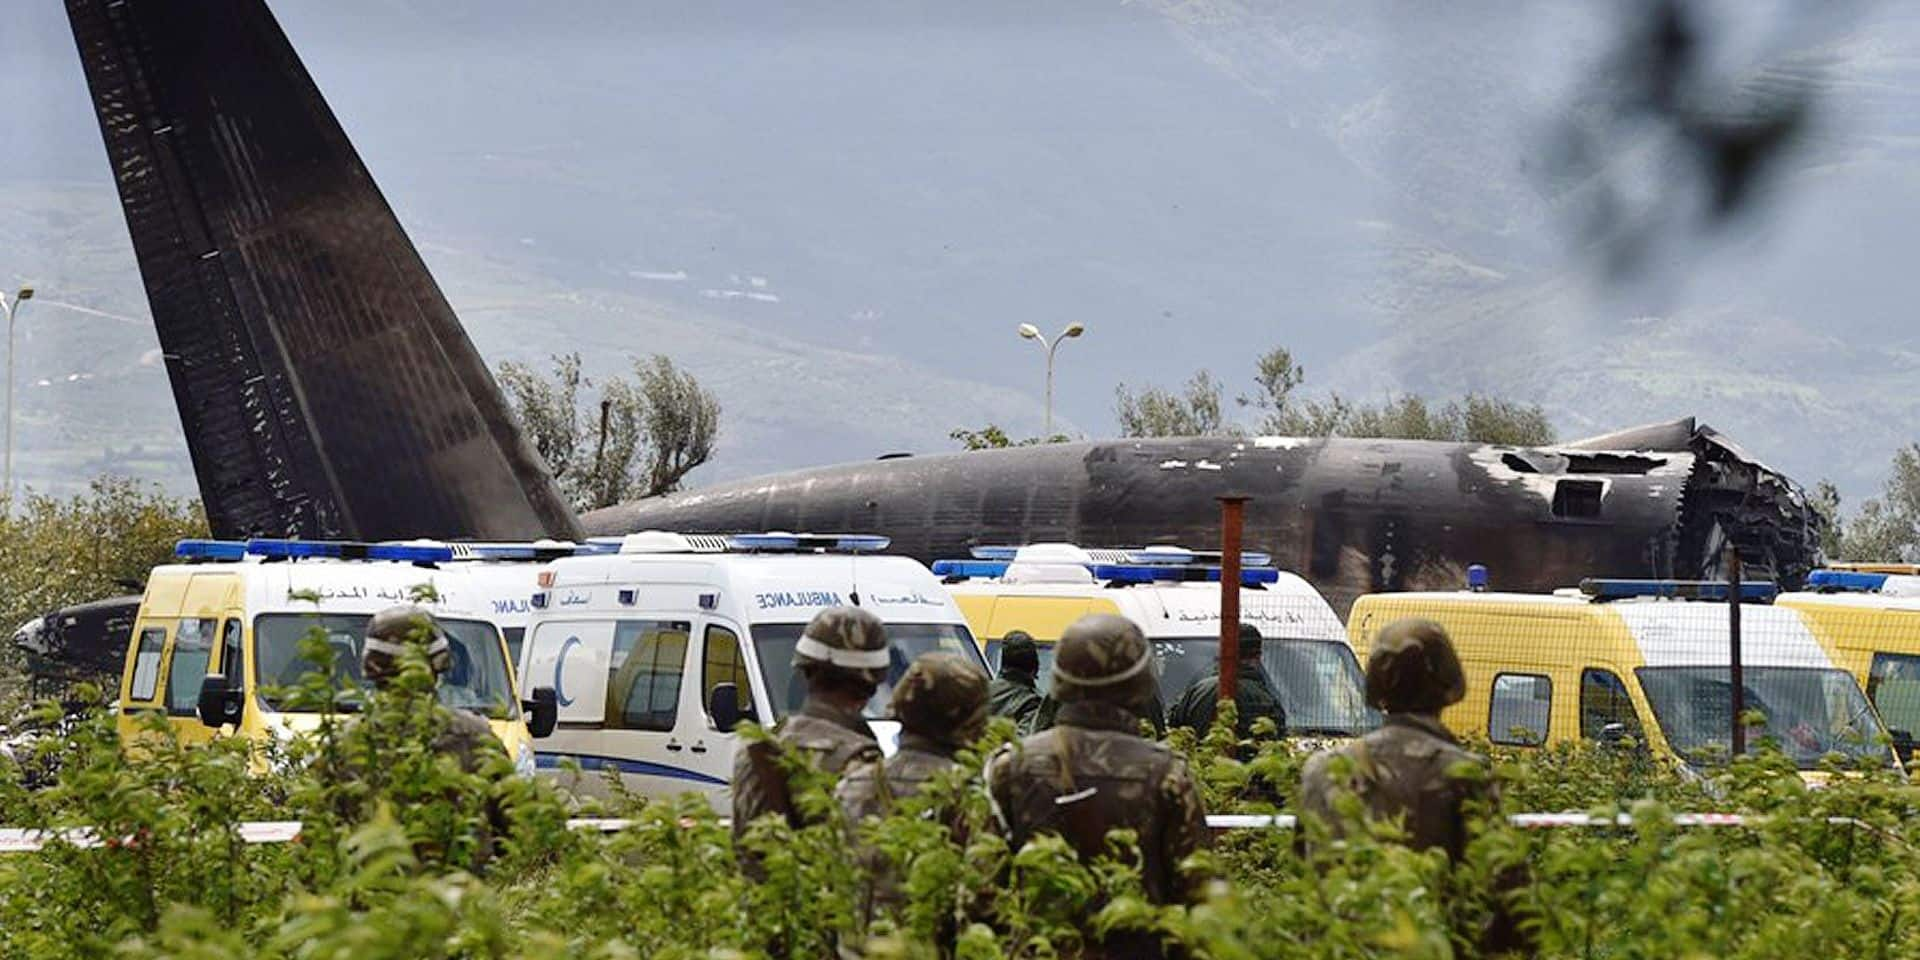 Rescuers and security forces are seen around the wreckage of an Algerian army plane which crashed near the Boufarik airbase from where the plane had taken off on April 11, 2018. The Algerian military plane crashed and caught fire killing 257 people, mostly army personnel and members of their families, officials said. / AFP PHOTO / Hasan MROUE AND RYAD KRAMDI